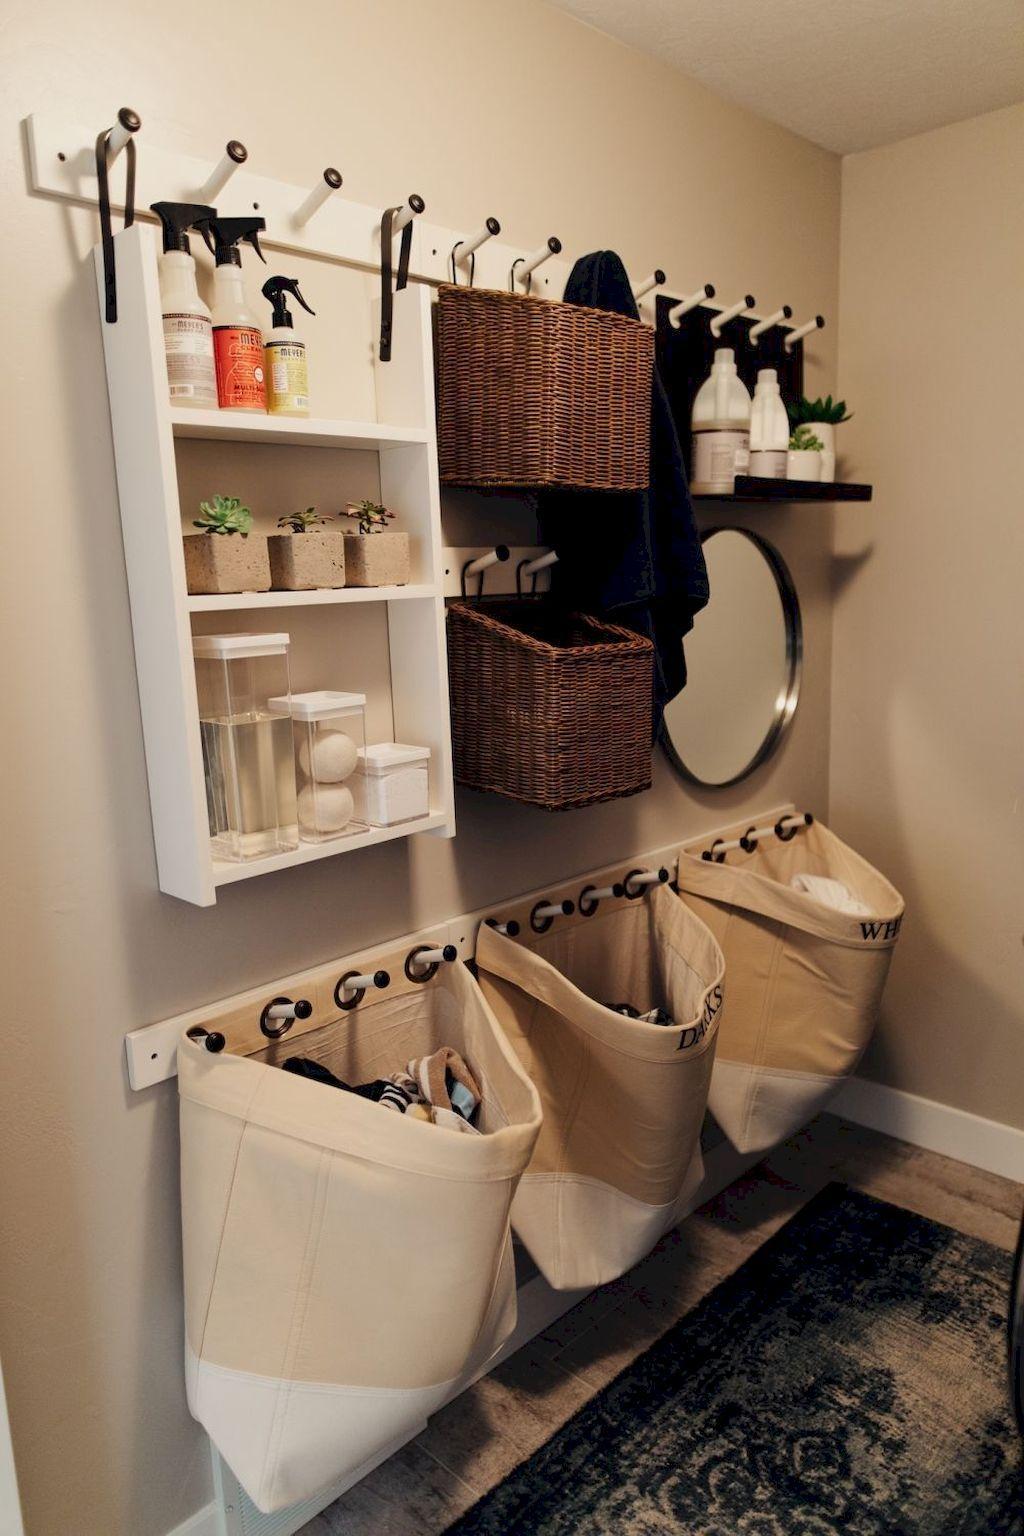 60 Functional Small Laundry Room Design Ideas With Images